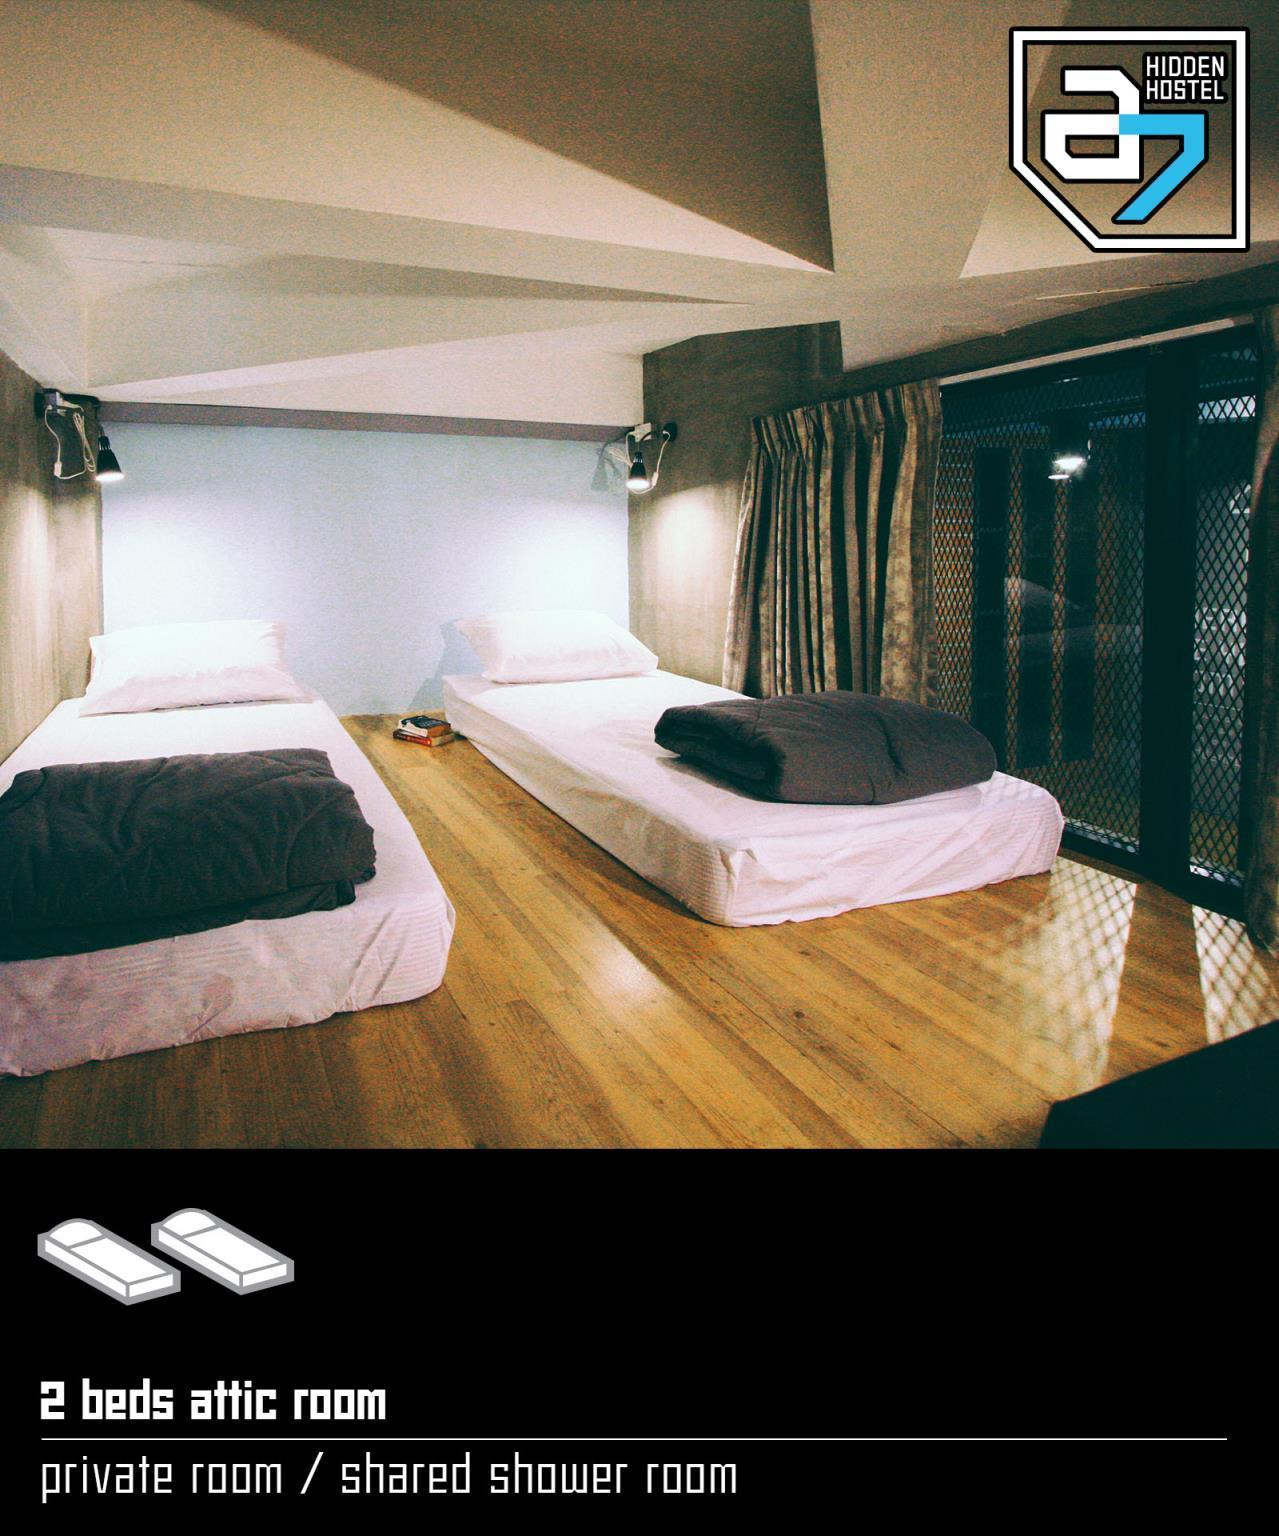 design space apartments apartment the income pricey m tune a hidden saving sq family where systems populated of bed densely than that furniture ss beds on are and city in per size to middle use more